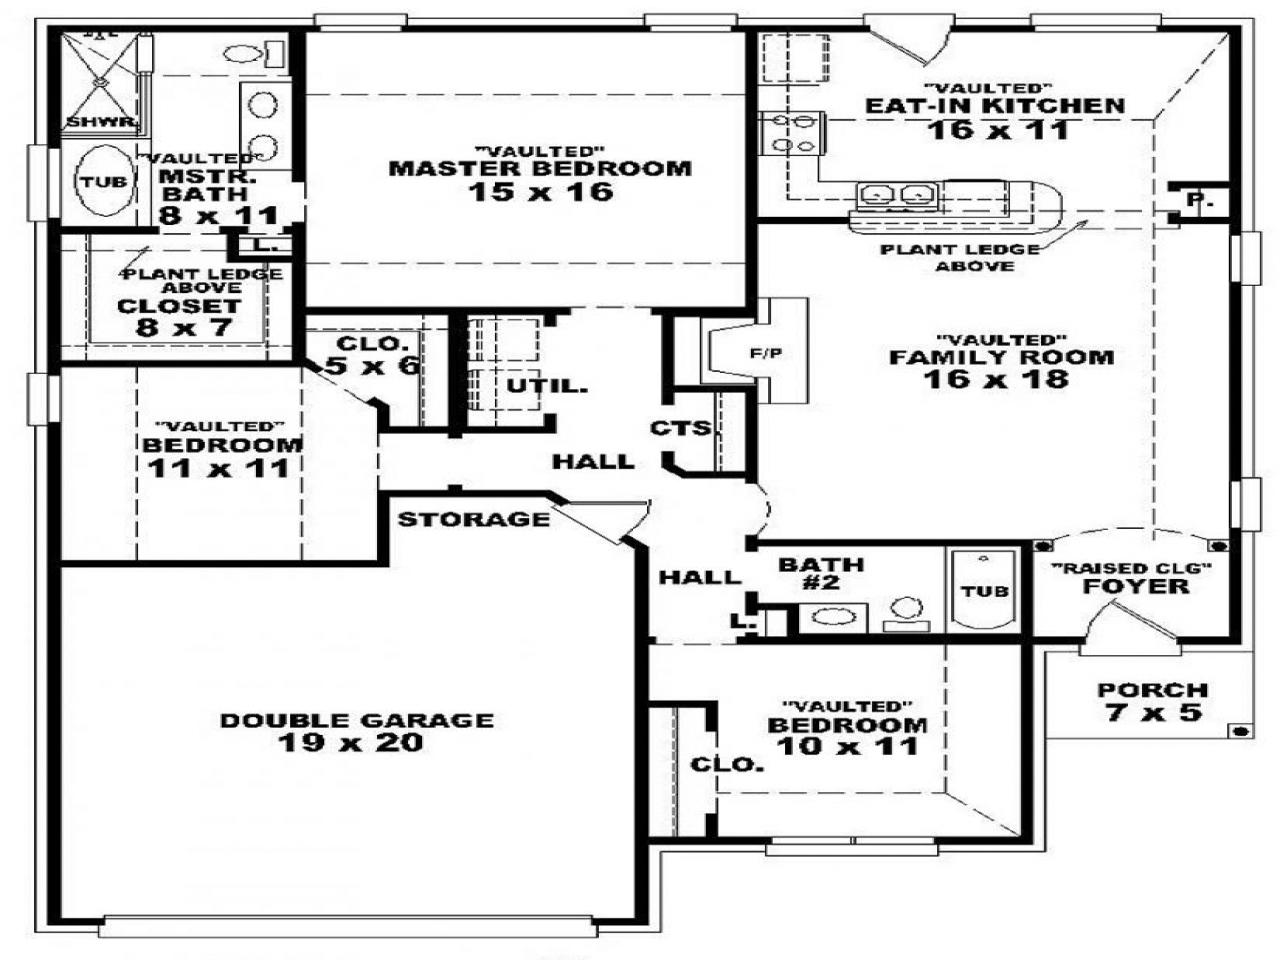 3 bedroom 2 bath house plans 1 level 3 bedroom 2 bath 1 for 2 level house plans